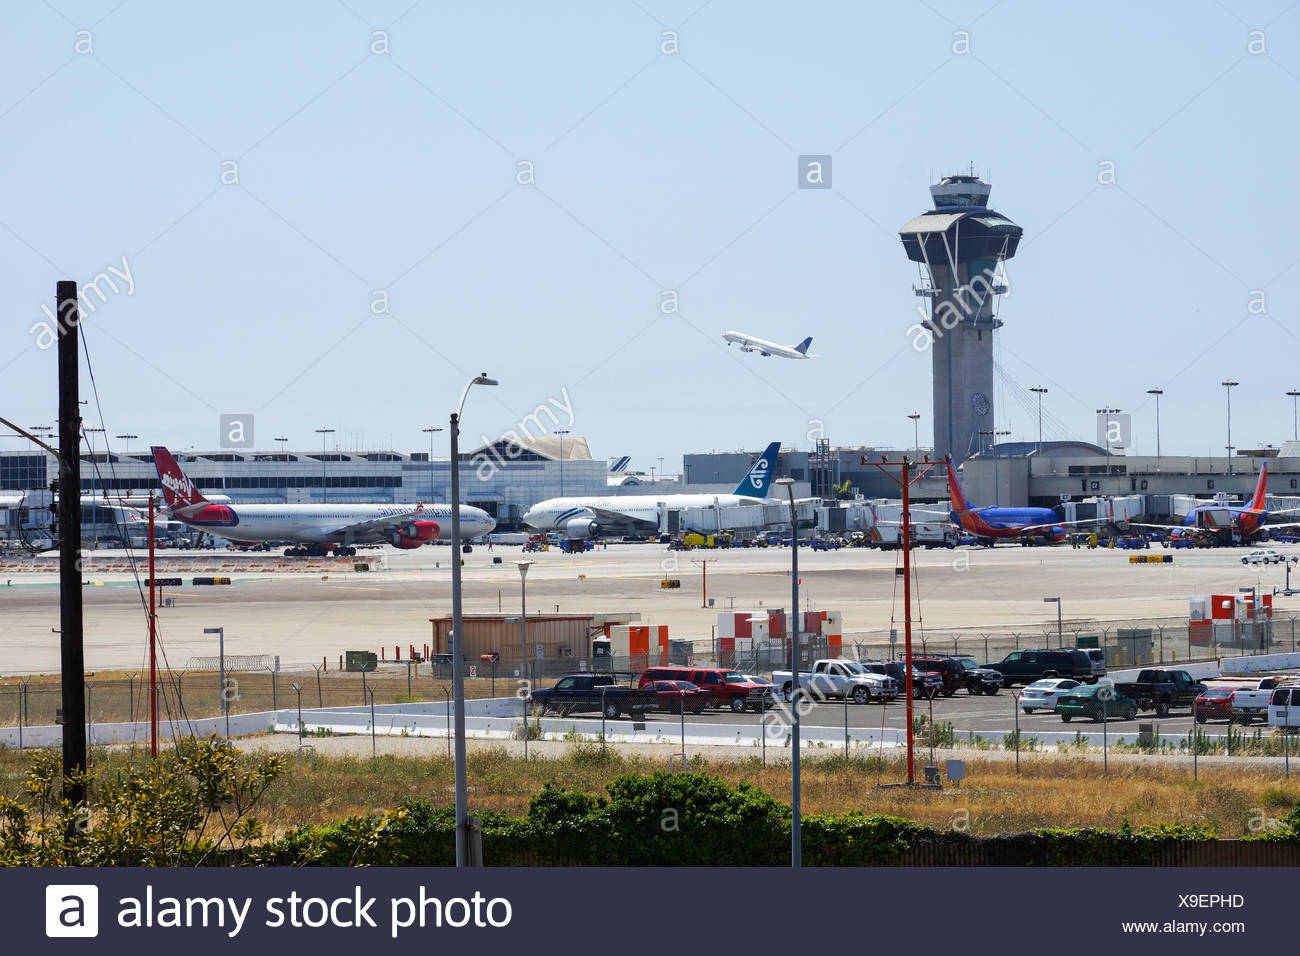 Los Angeles Airport LAX - Stock Image